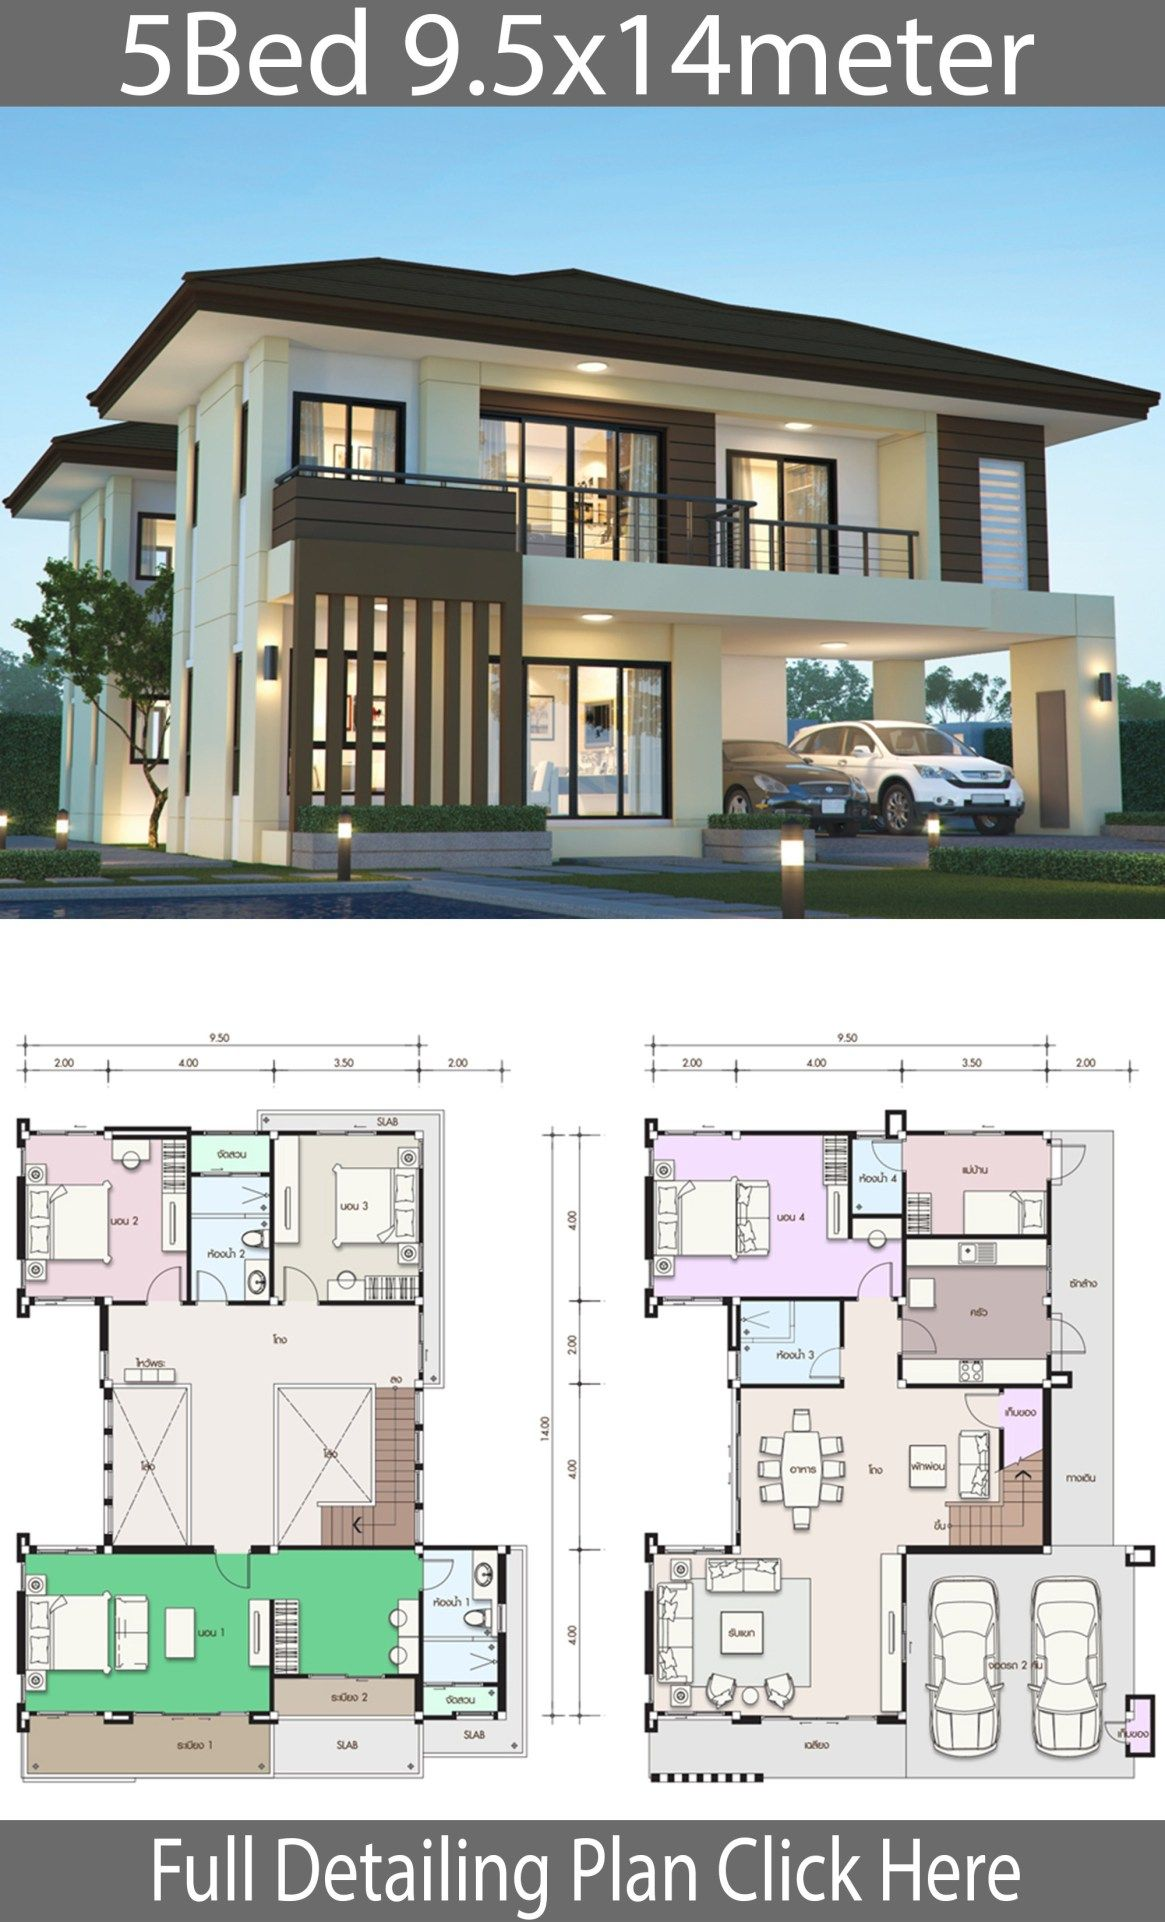 House Design Plan 9 5x14m With 5 Bedrooms Style Modern Tropicalhouse Description Number Of Floor 2 Storey House Design Affordable House Plans Model House Plan